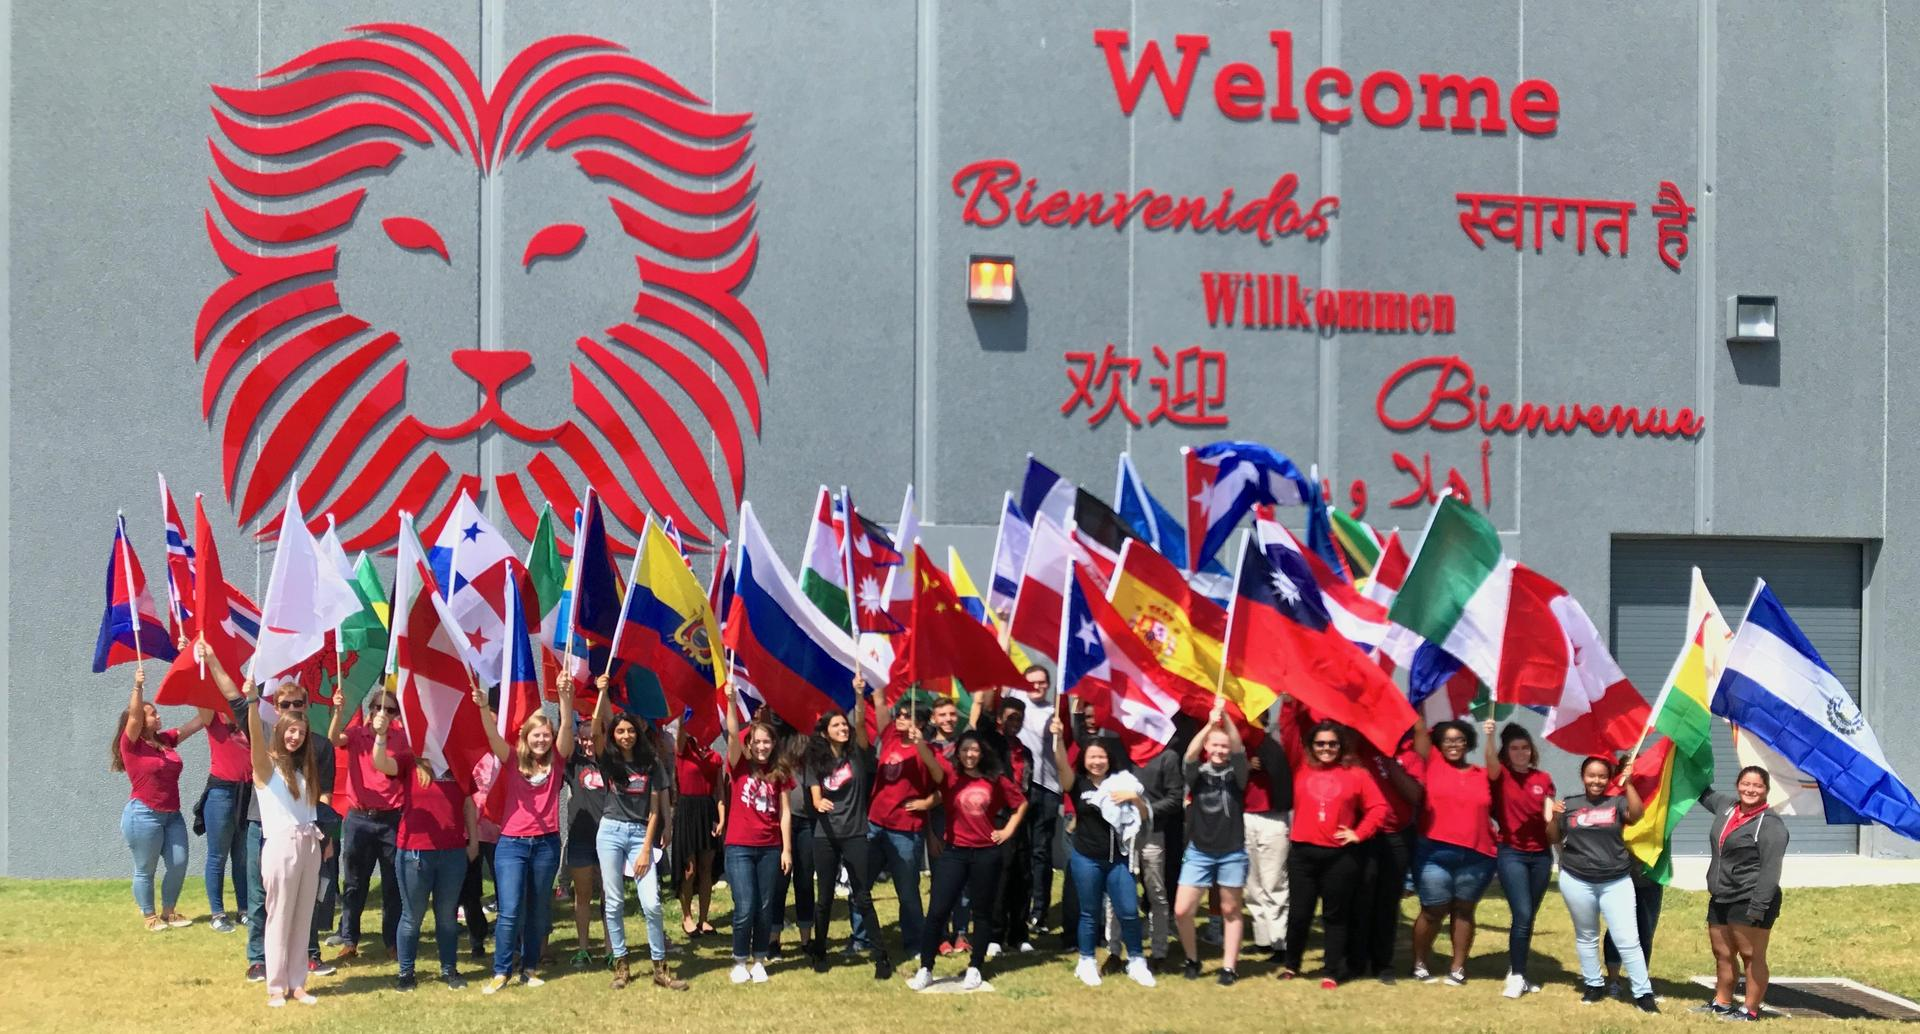 International Day, in which students celebrate their cultures and heritage through a large parade.